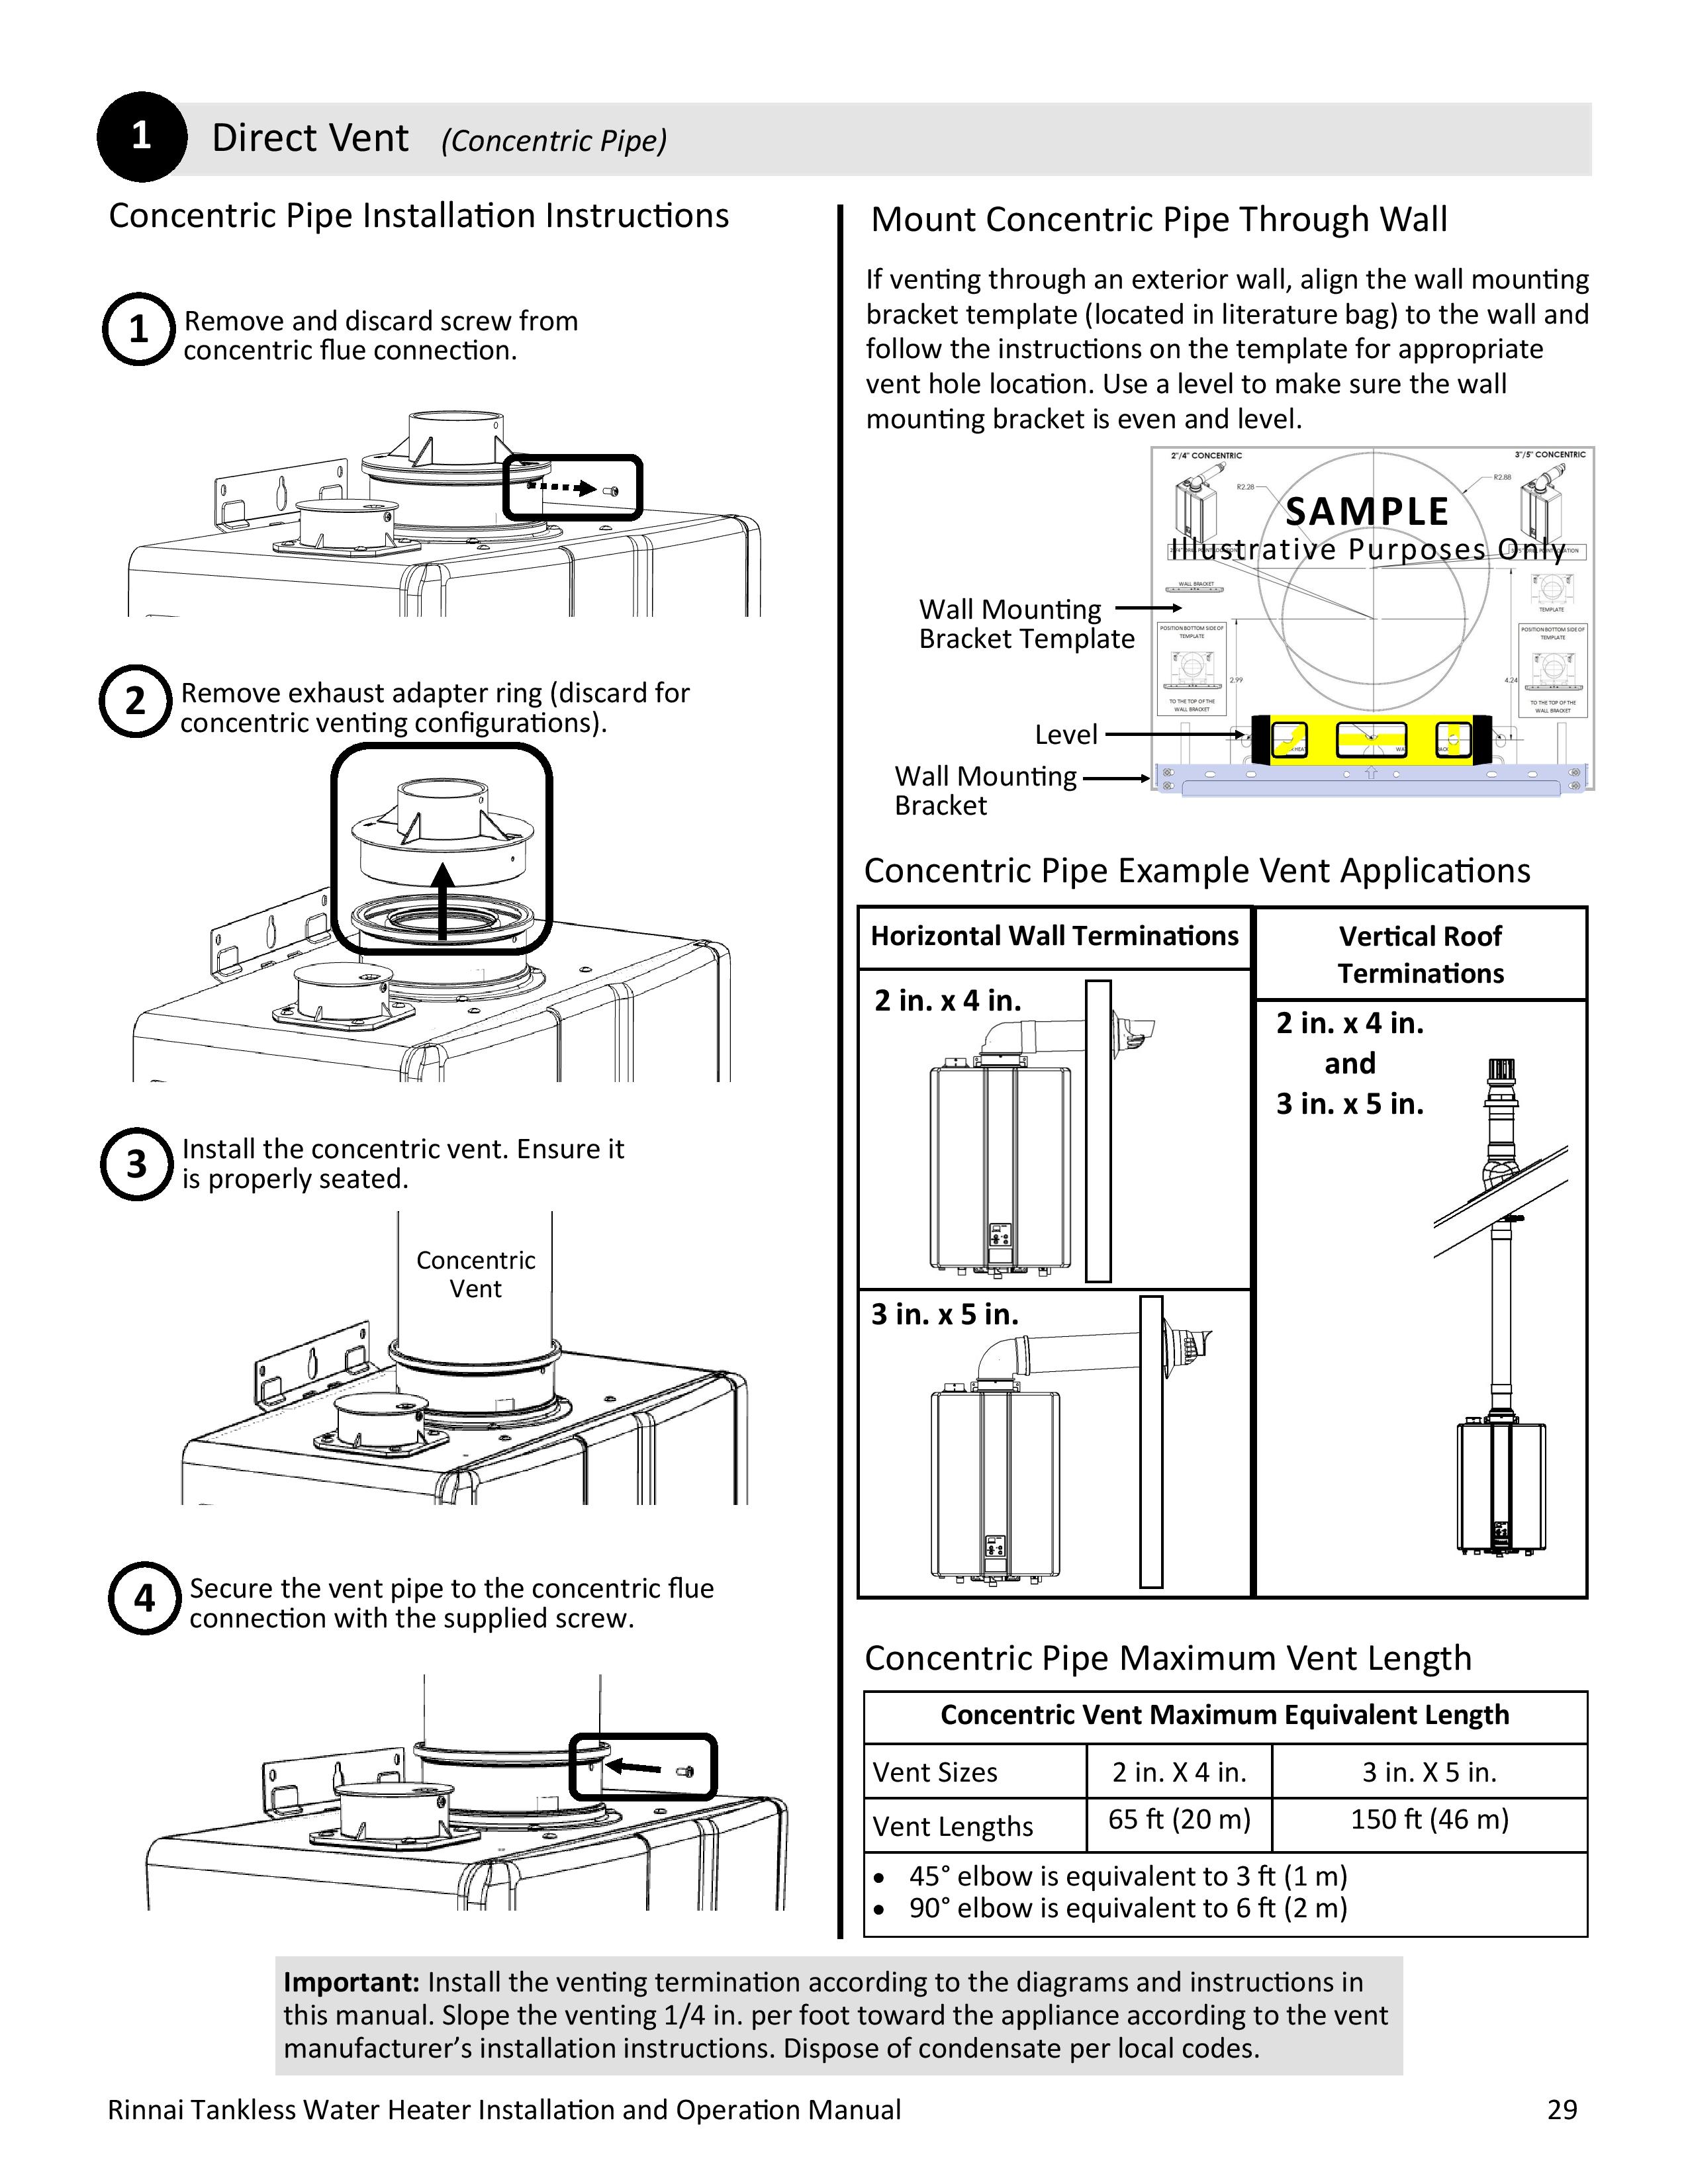 100000504-N_20Series_20Commercial_20Condensing_20Installation_20and_20Operation_20Manual-page-029.jpg